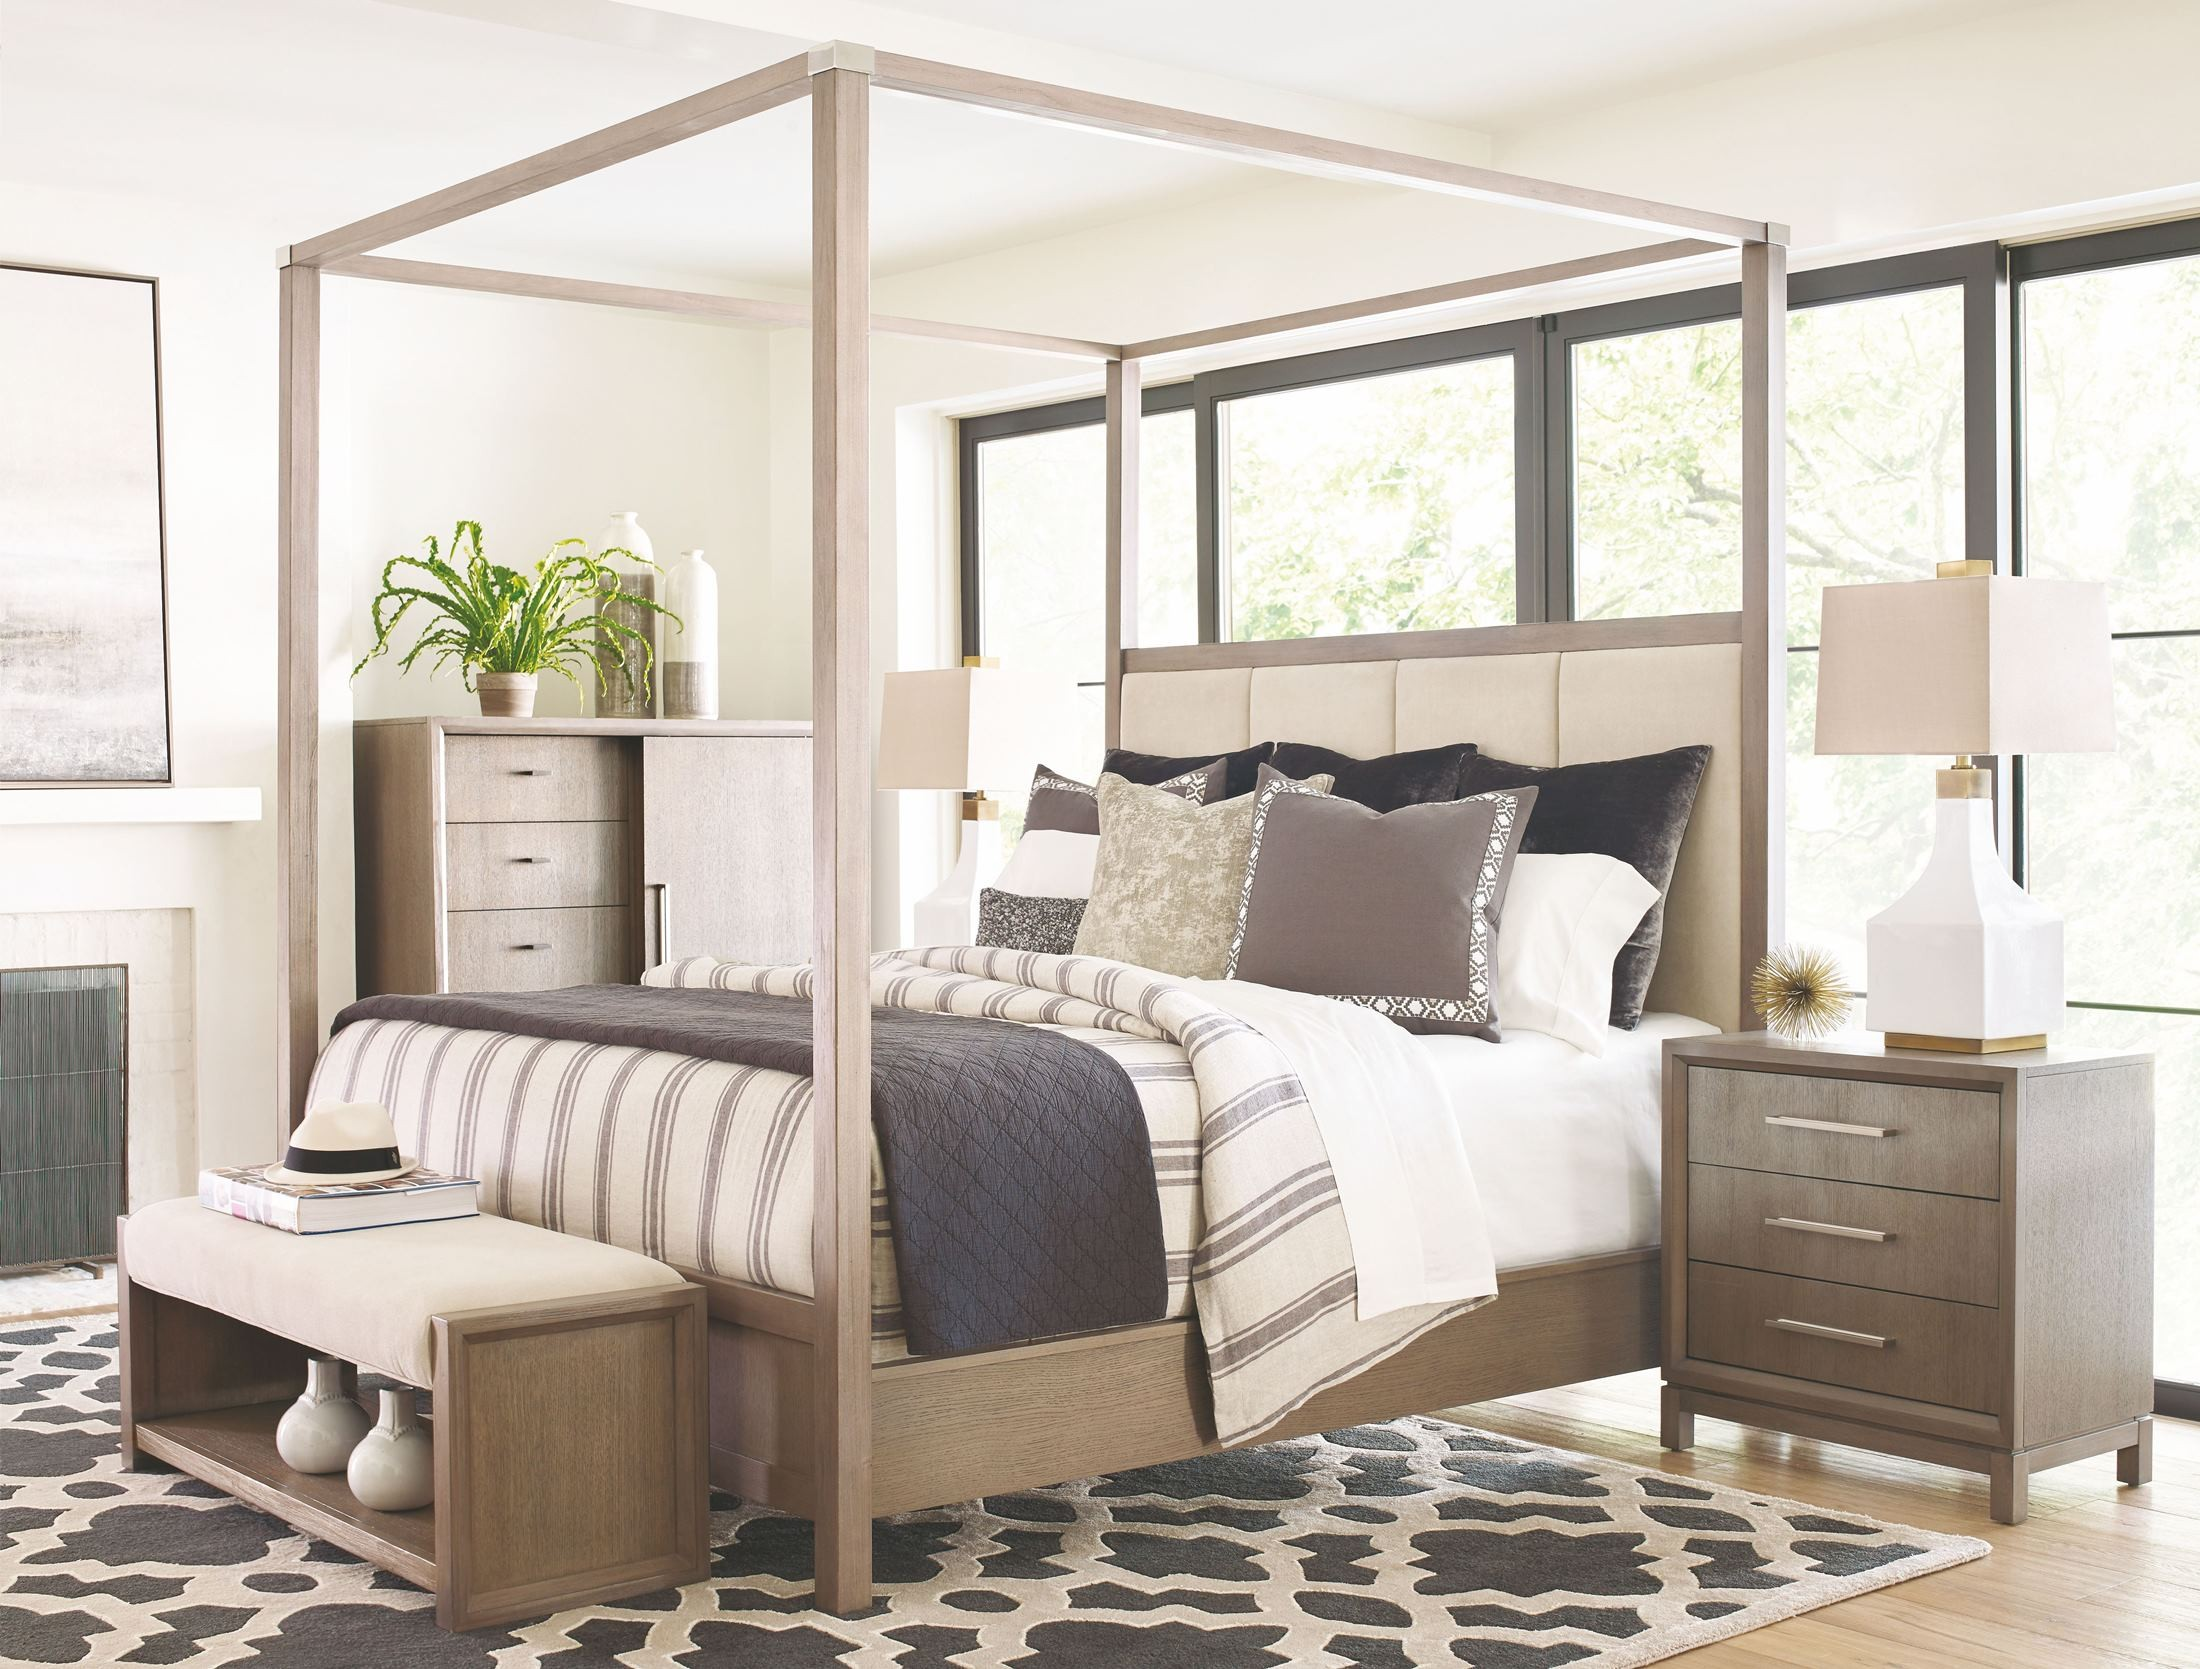 High Line Greige Upholstered Poster Bedroom Set From Rachael Ray Home |  Coleman Furniture